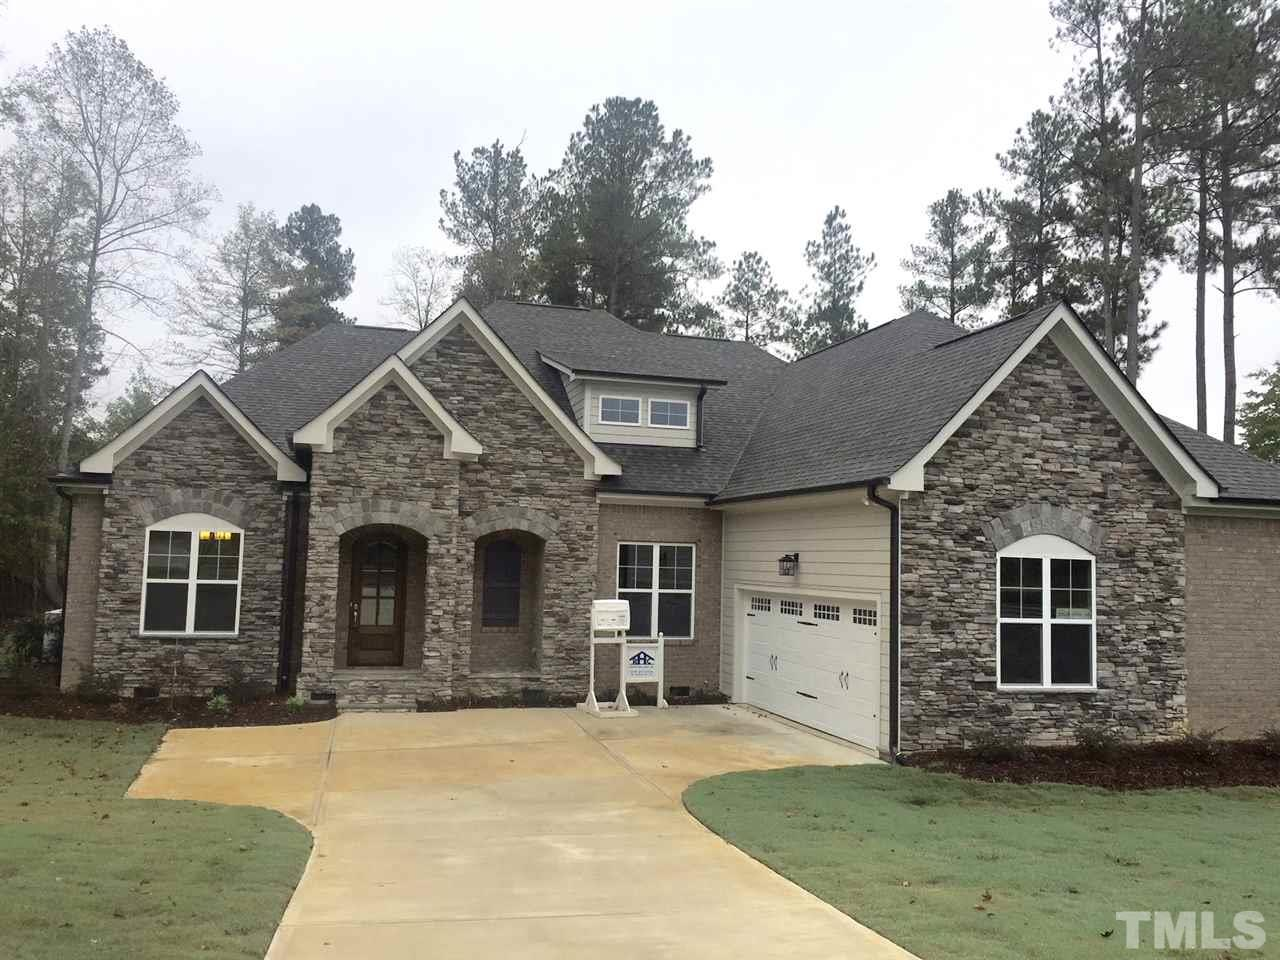 503 Golfers View, Pittsboro, NC 27312